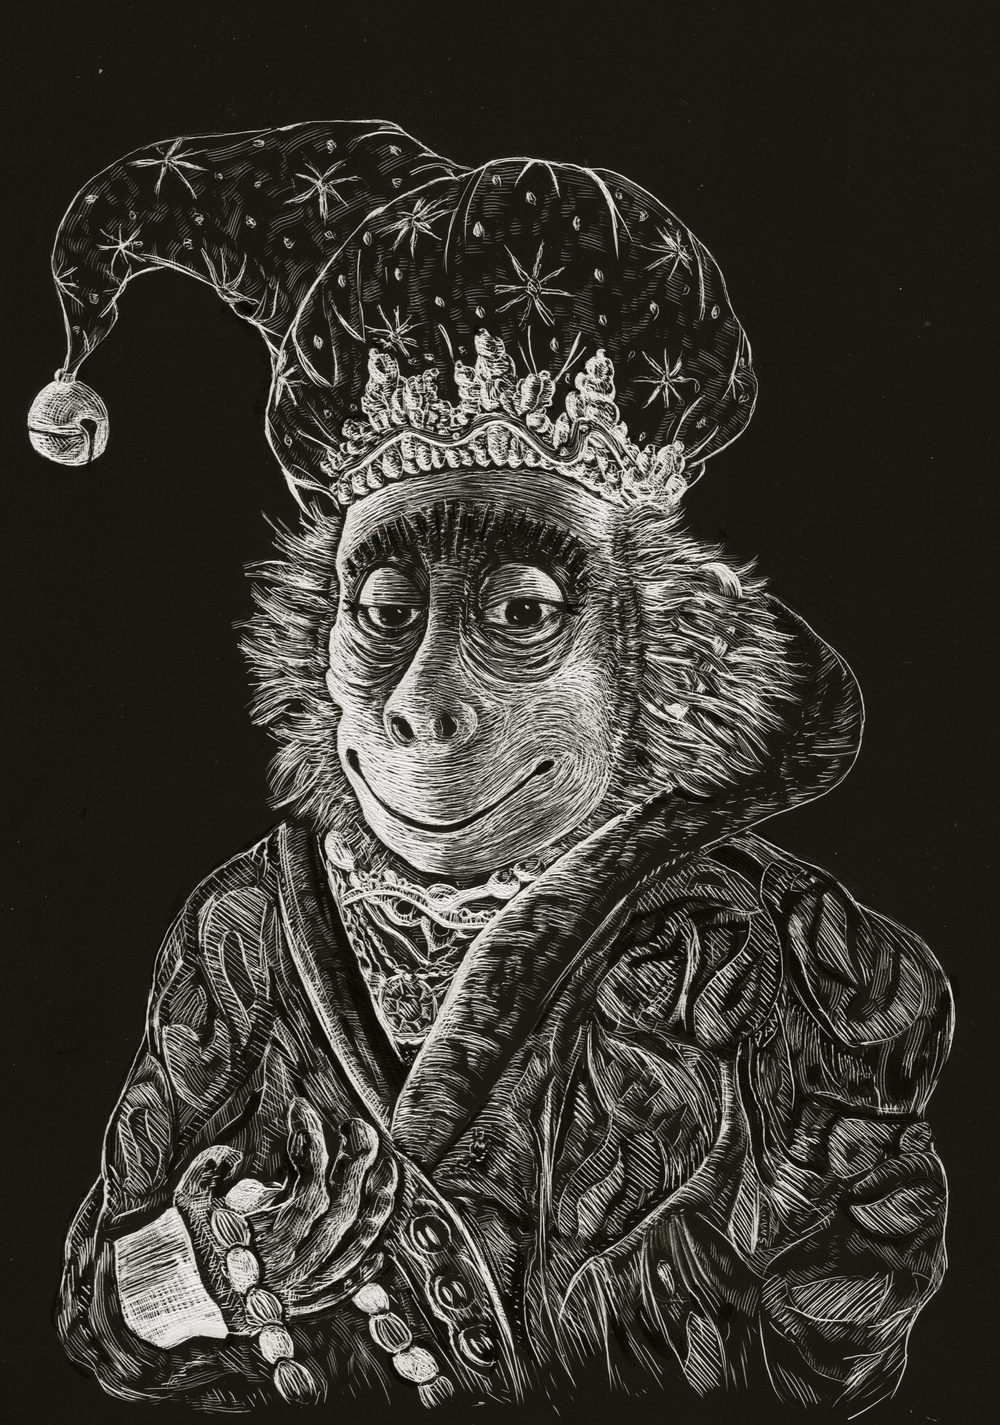 Here is the portrait of the Christmas Monkey. He's modeled after a figurine the author provided.